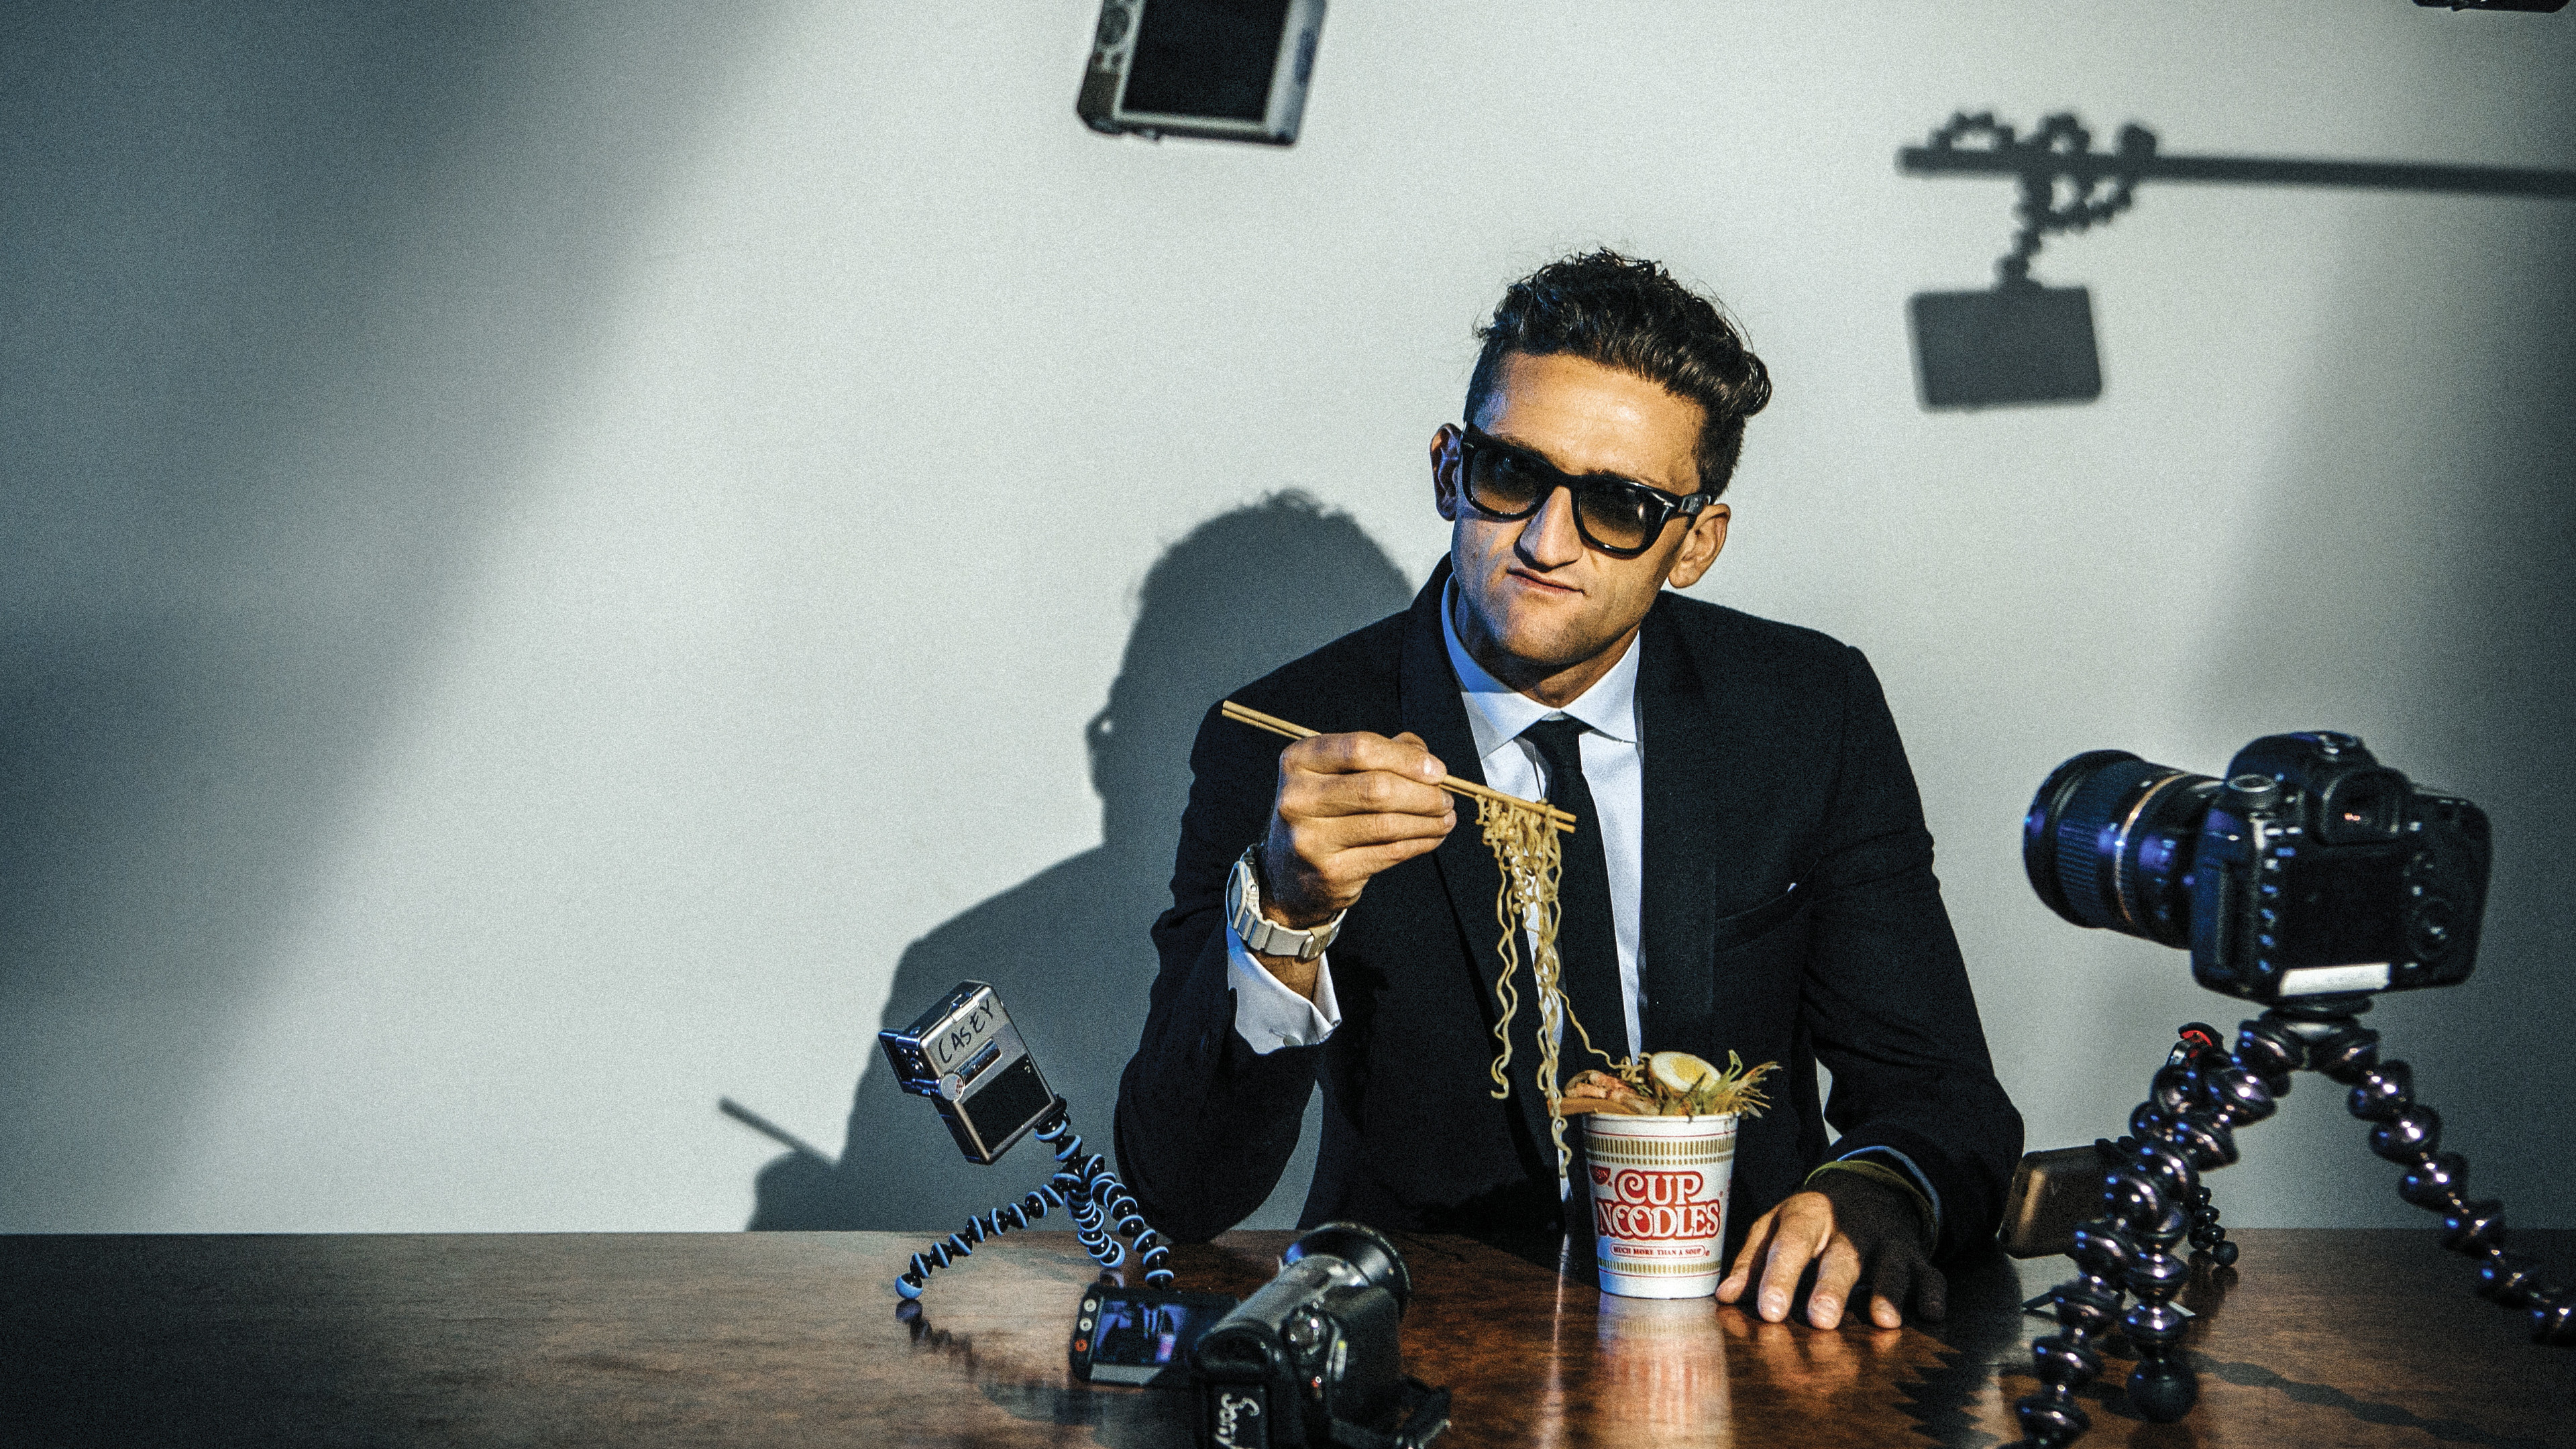 casey neistat with camera 1536946385 - Casey Neistat With Camera - male celebrities wallpapers, hd-wallpapers, casey neistat wallpapers, boys wallpapers, 5k wallpapers, 4k-wallpapers